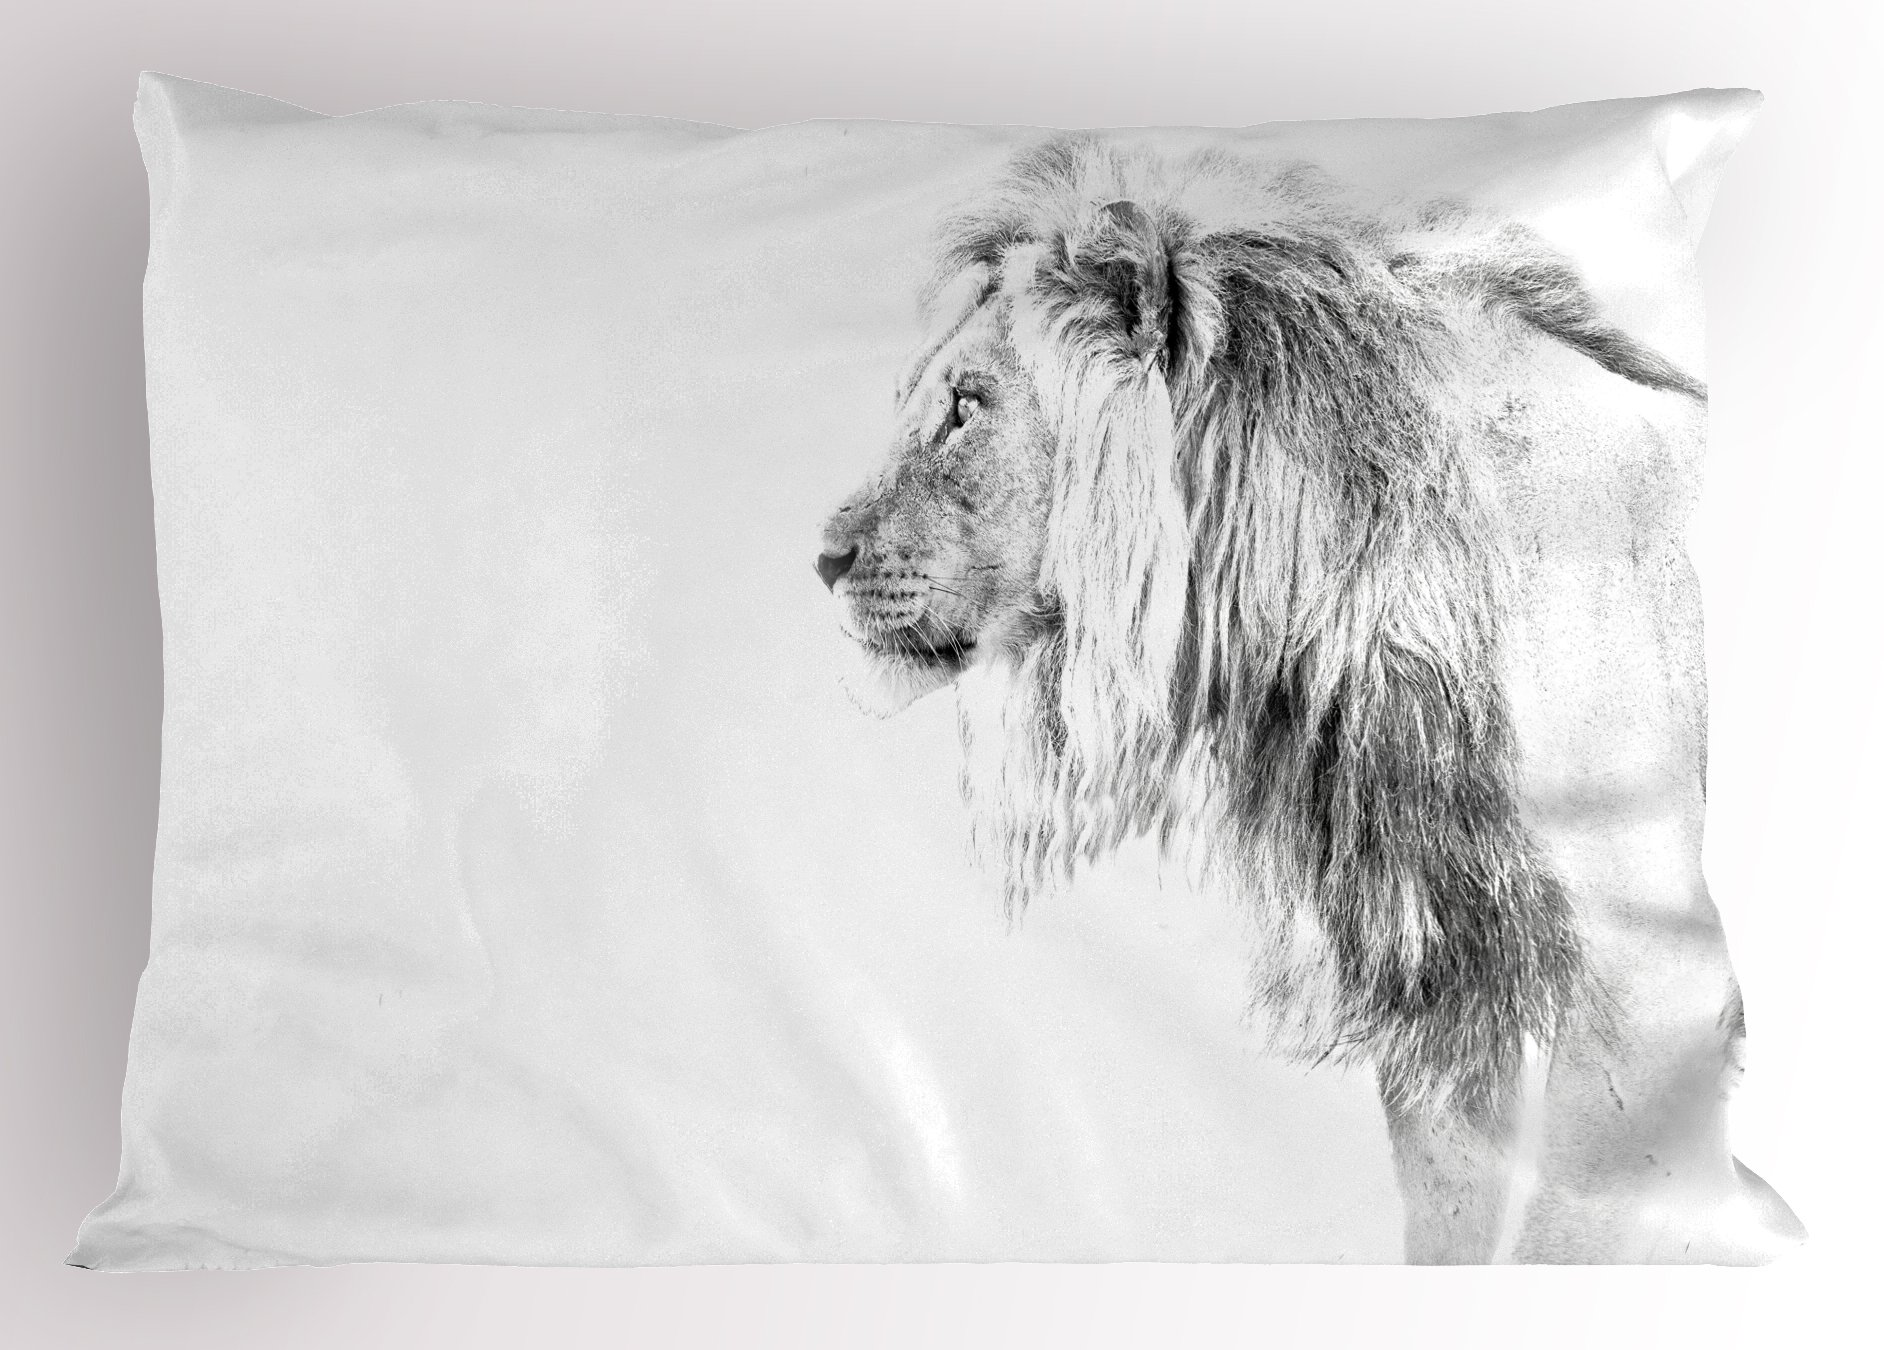 Lunarable Lion Pillow Sham, Black and White Hand Drawn Lion Surveying for Prey Majestic Animal Royal Beast King, Decorative Standard King Size Printed Pillowcase, 36 X 20 inches, Black White